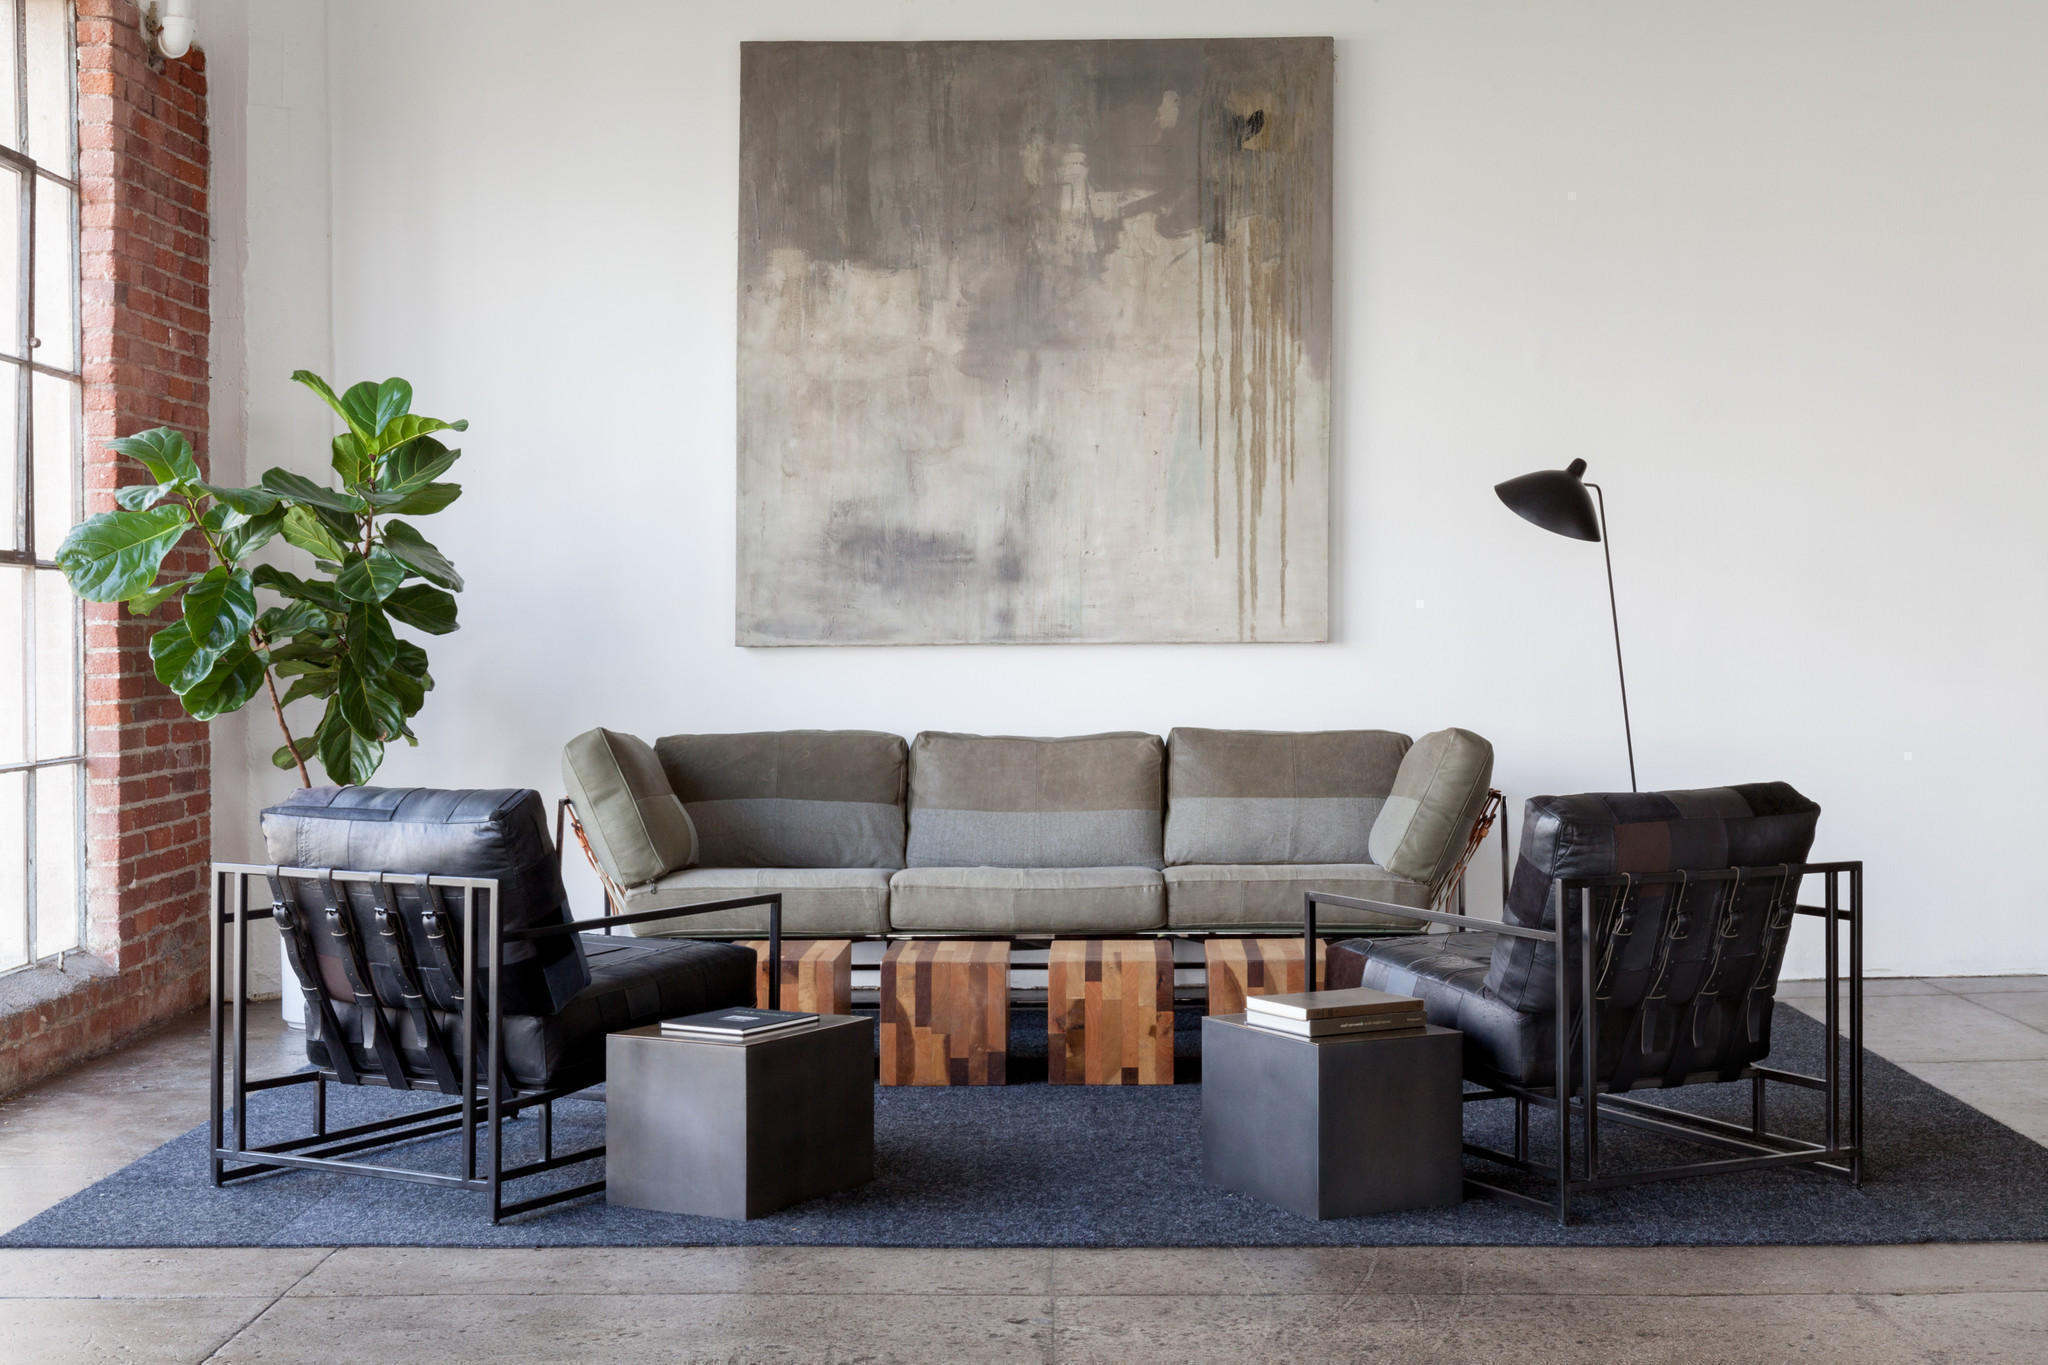 Kenn and the menswear label longjourney includes armchairs made from repurposed leather motorcycle jackets and a sofa upcycled from vintage sweatshirts